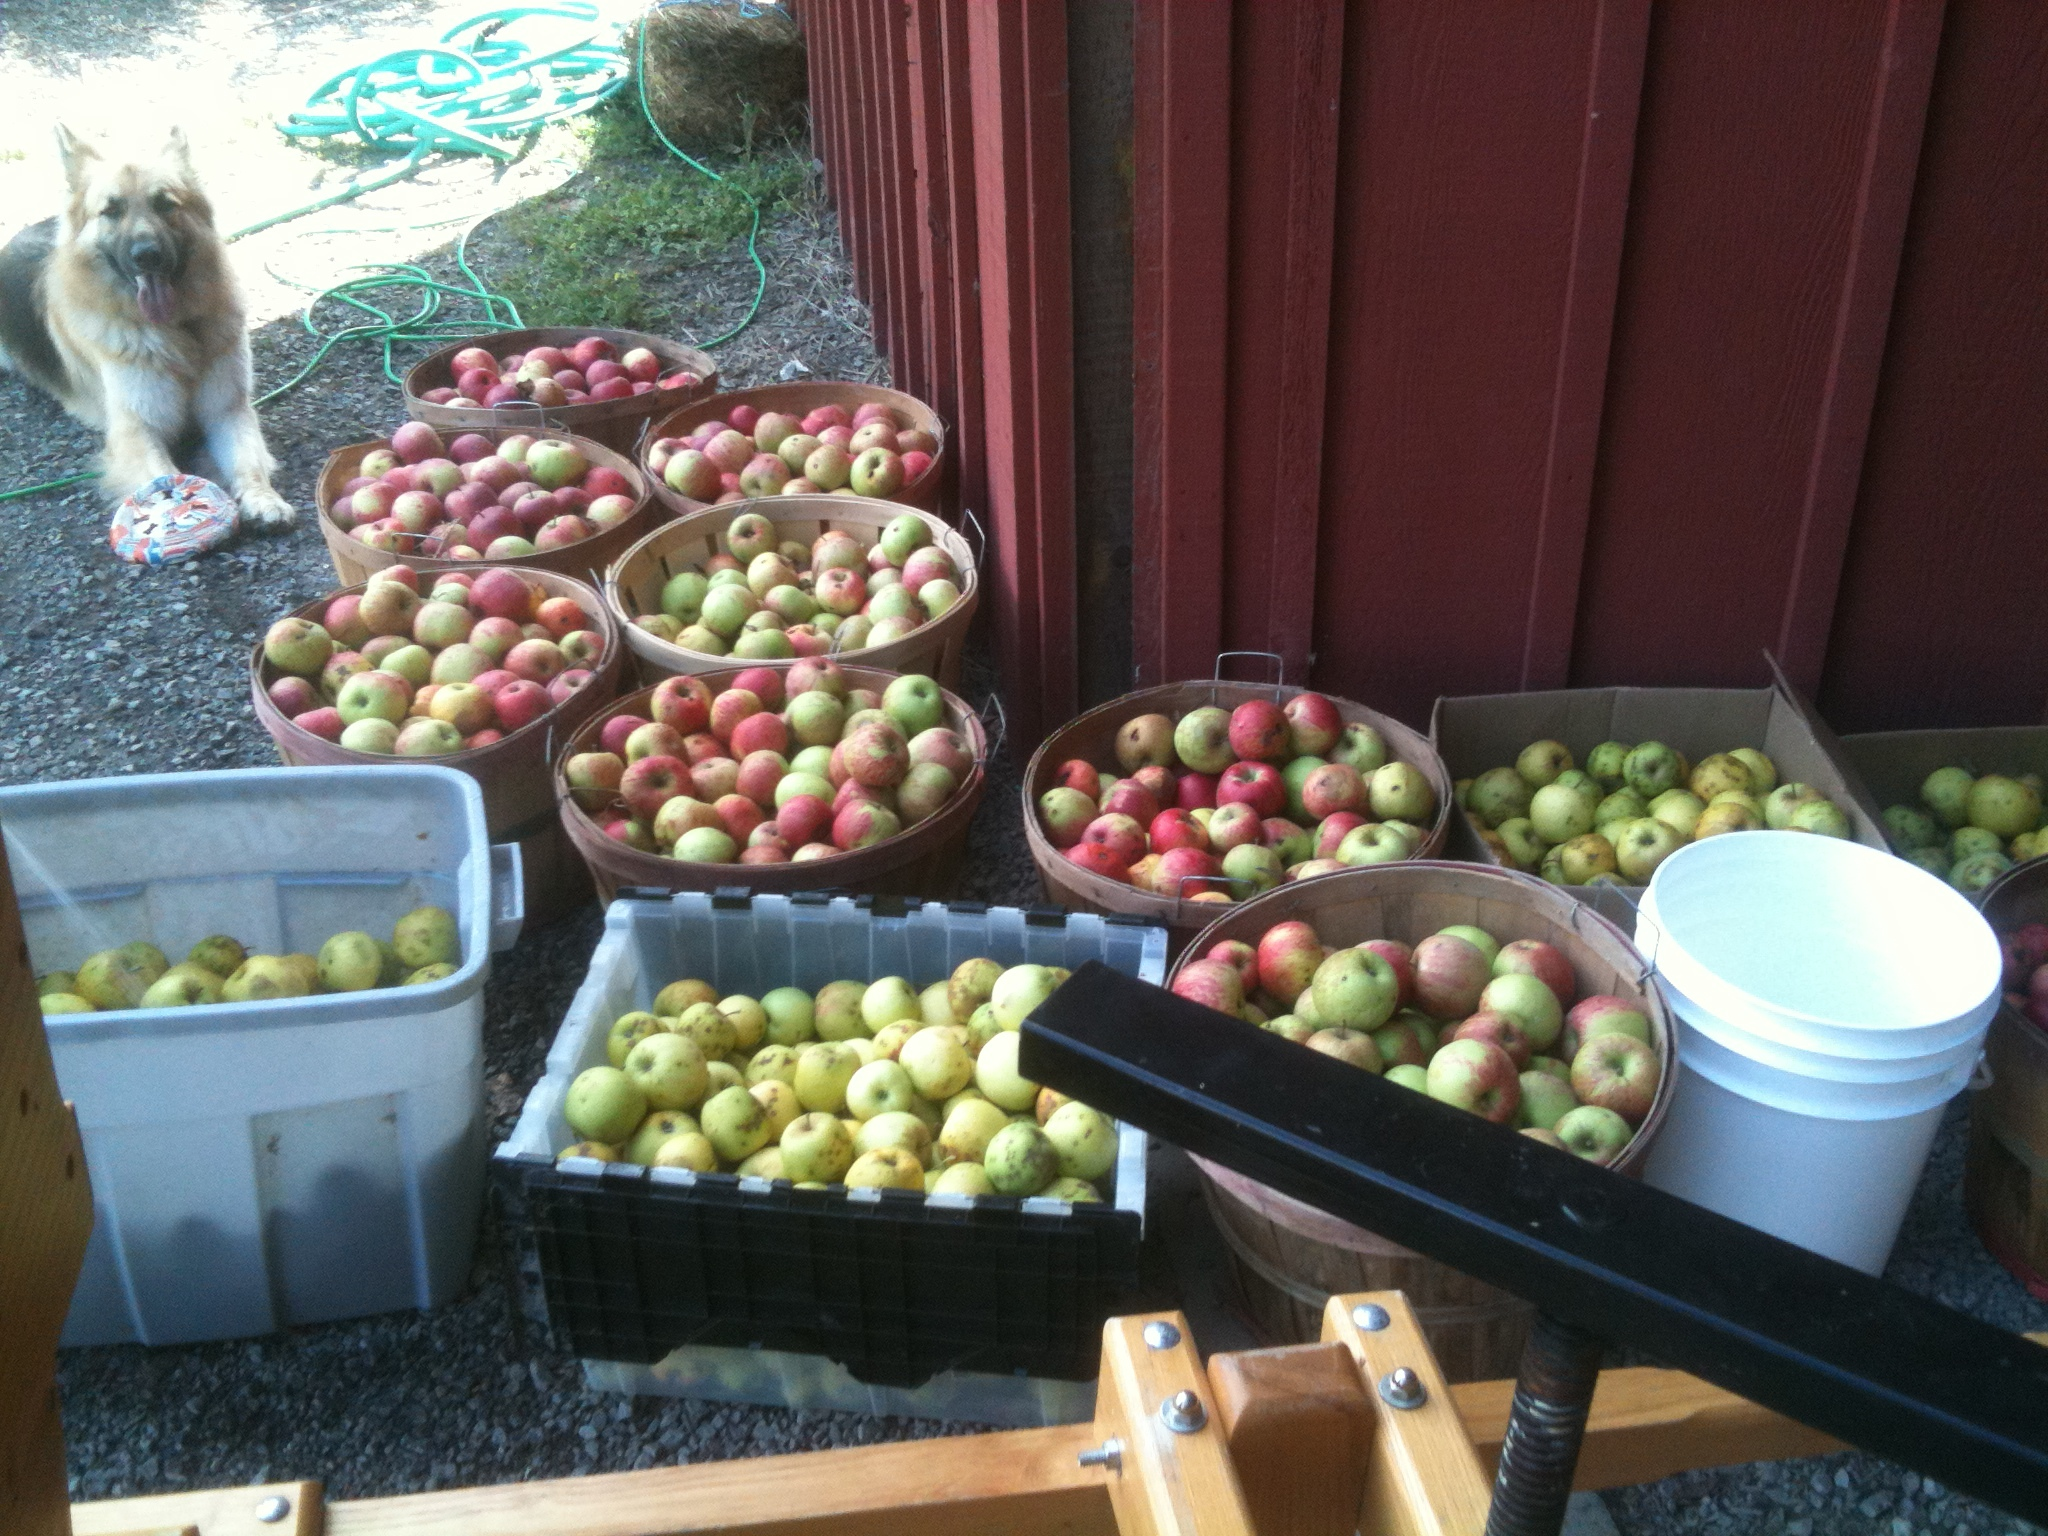 New Project: Apple Cider